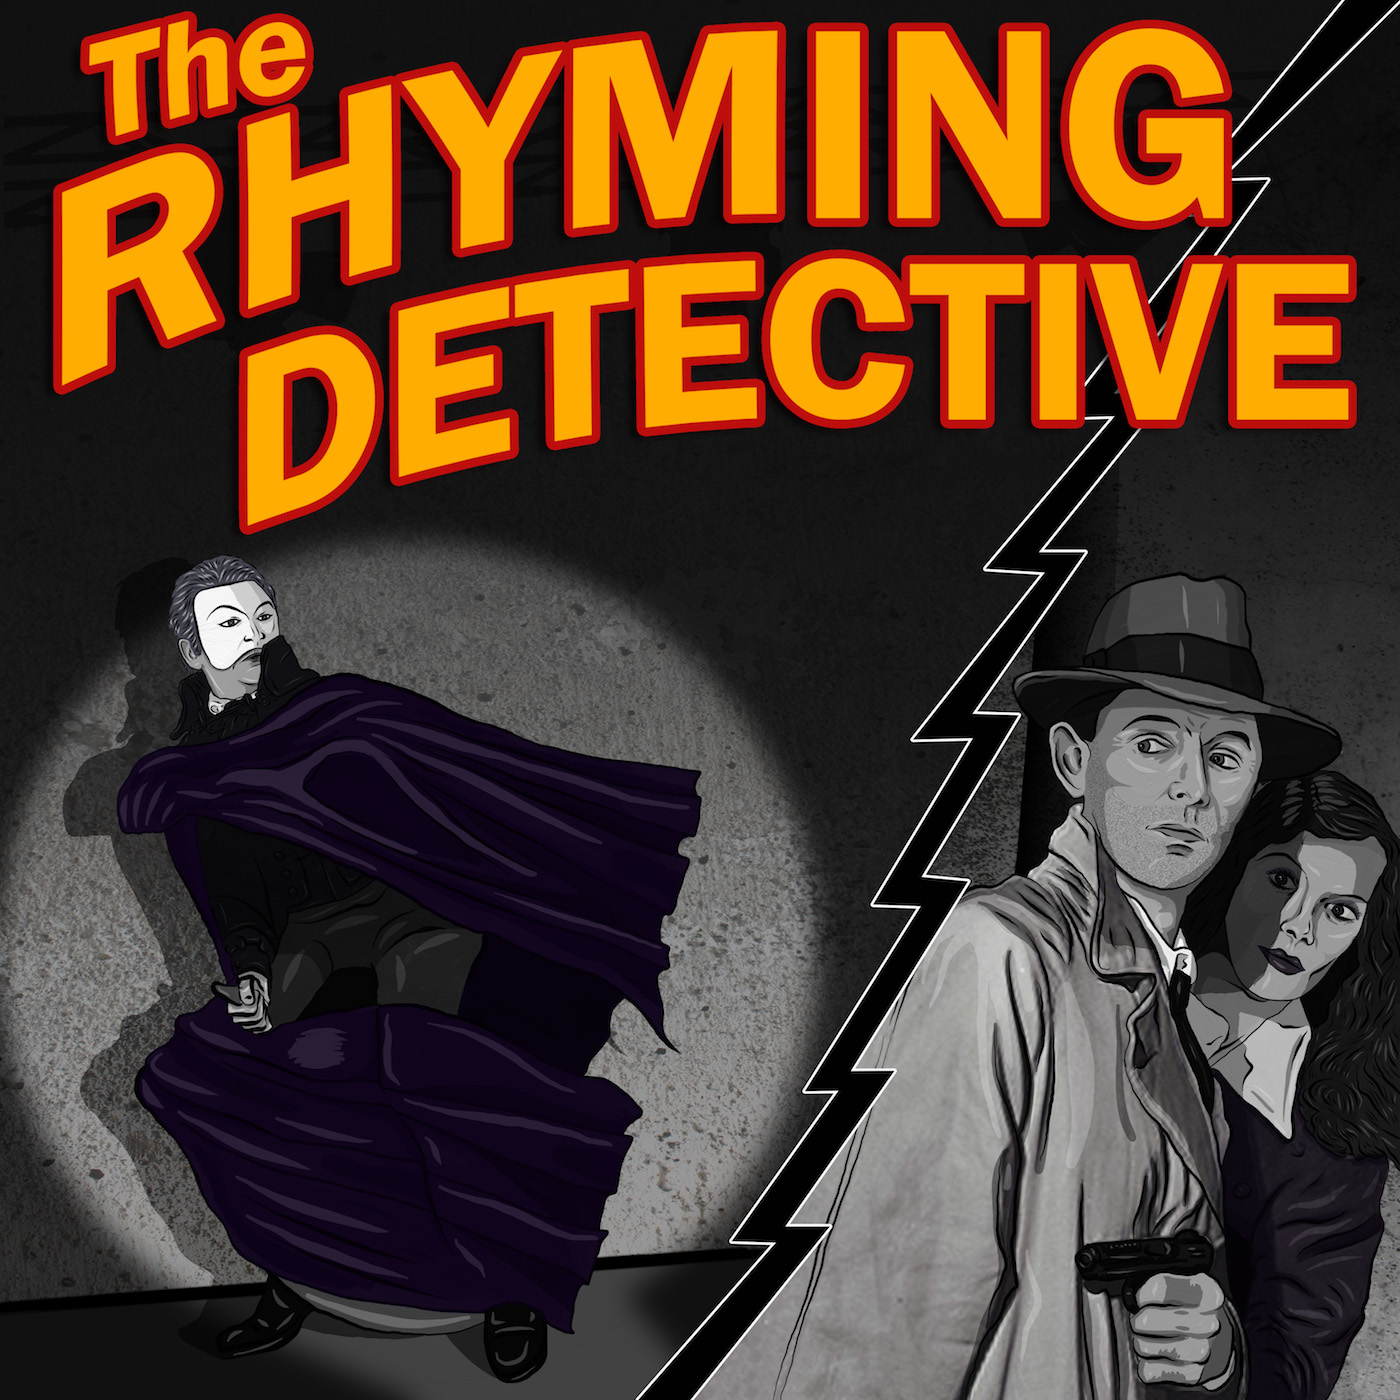 The Rhyming Detective